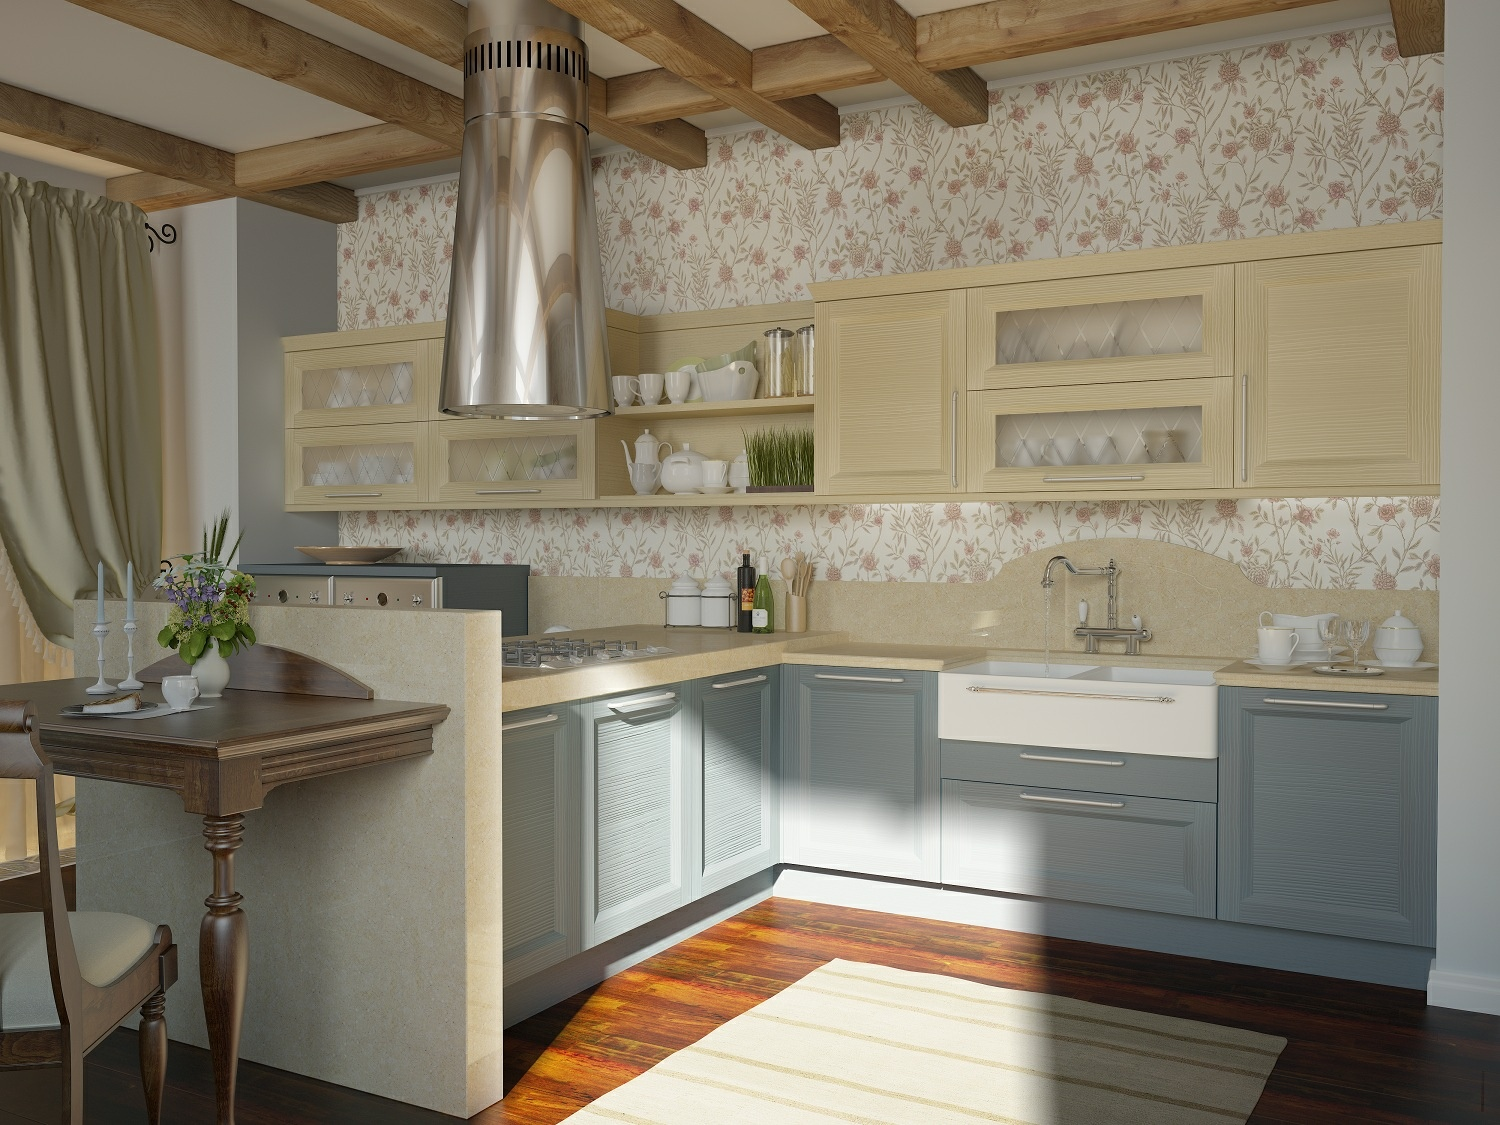 11 luxurious traditional kitchen ideas kitchen wallpaper designs